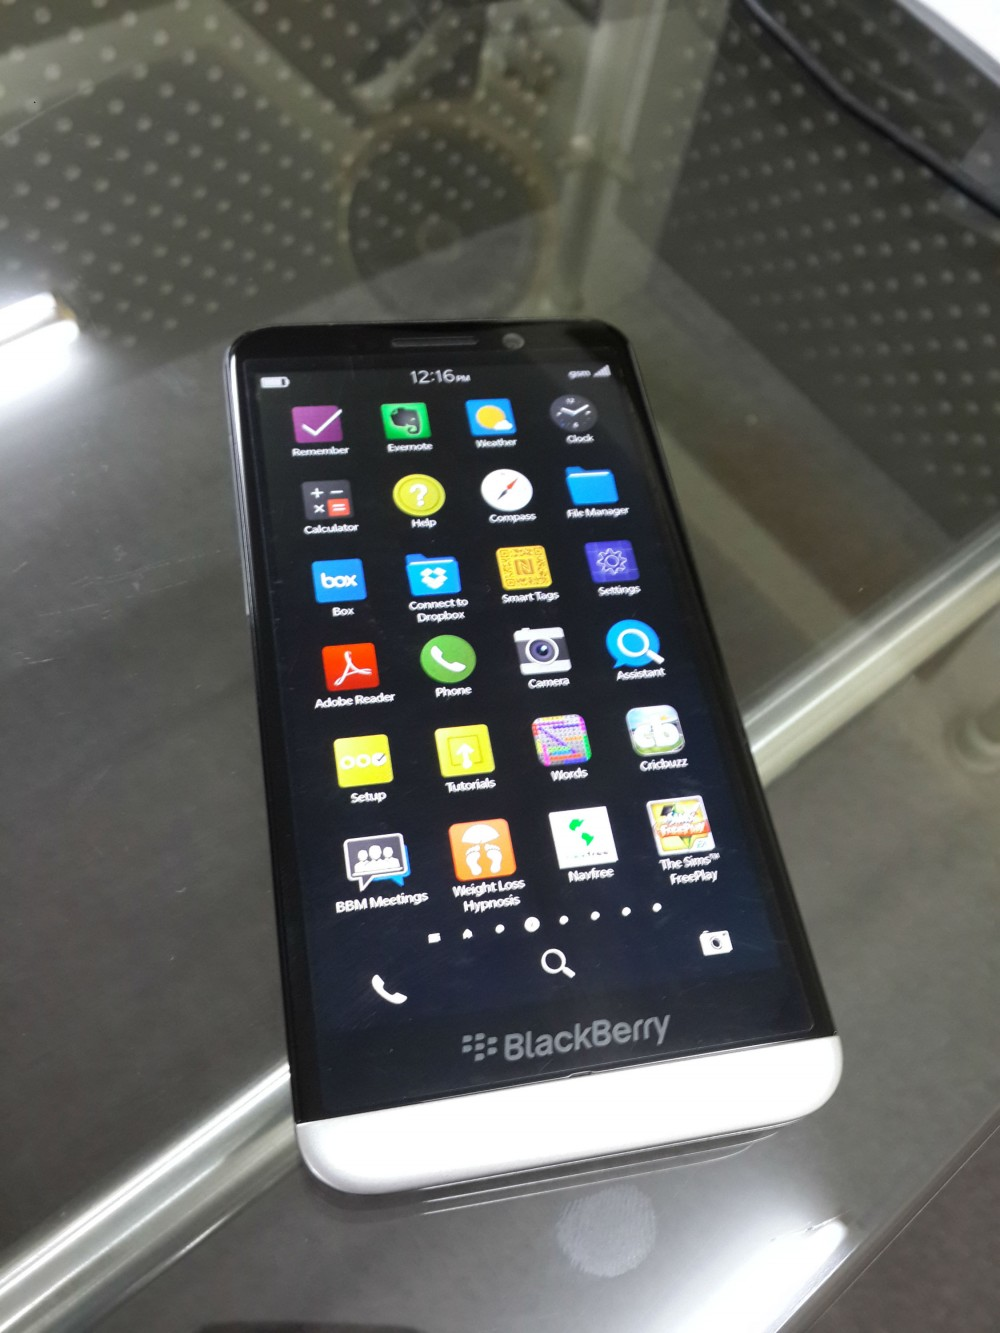 blackberry os 10 missing features